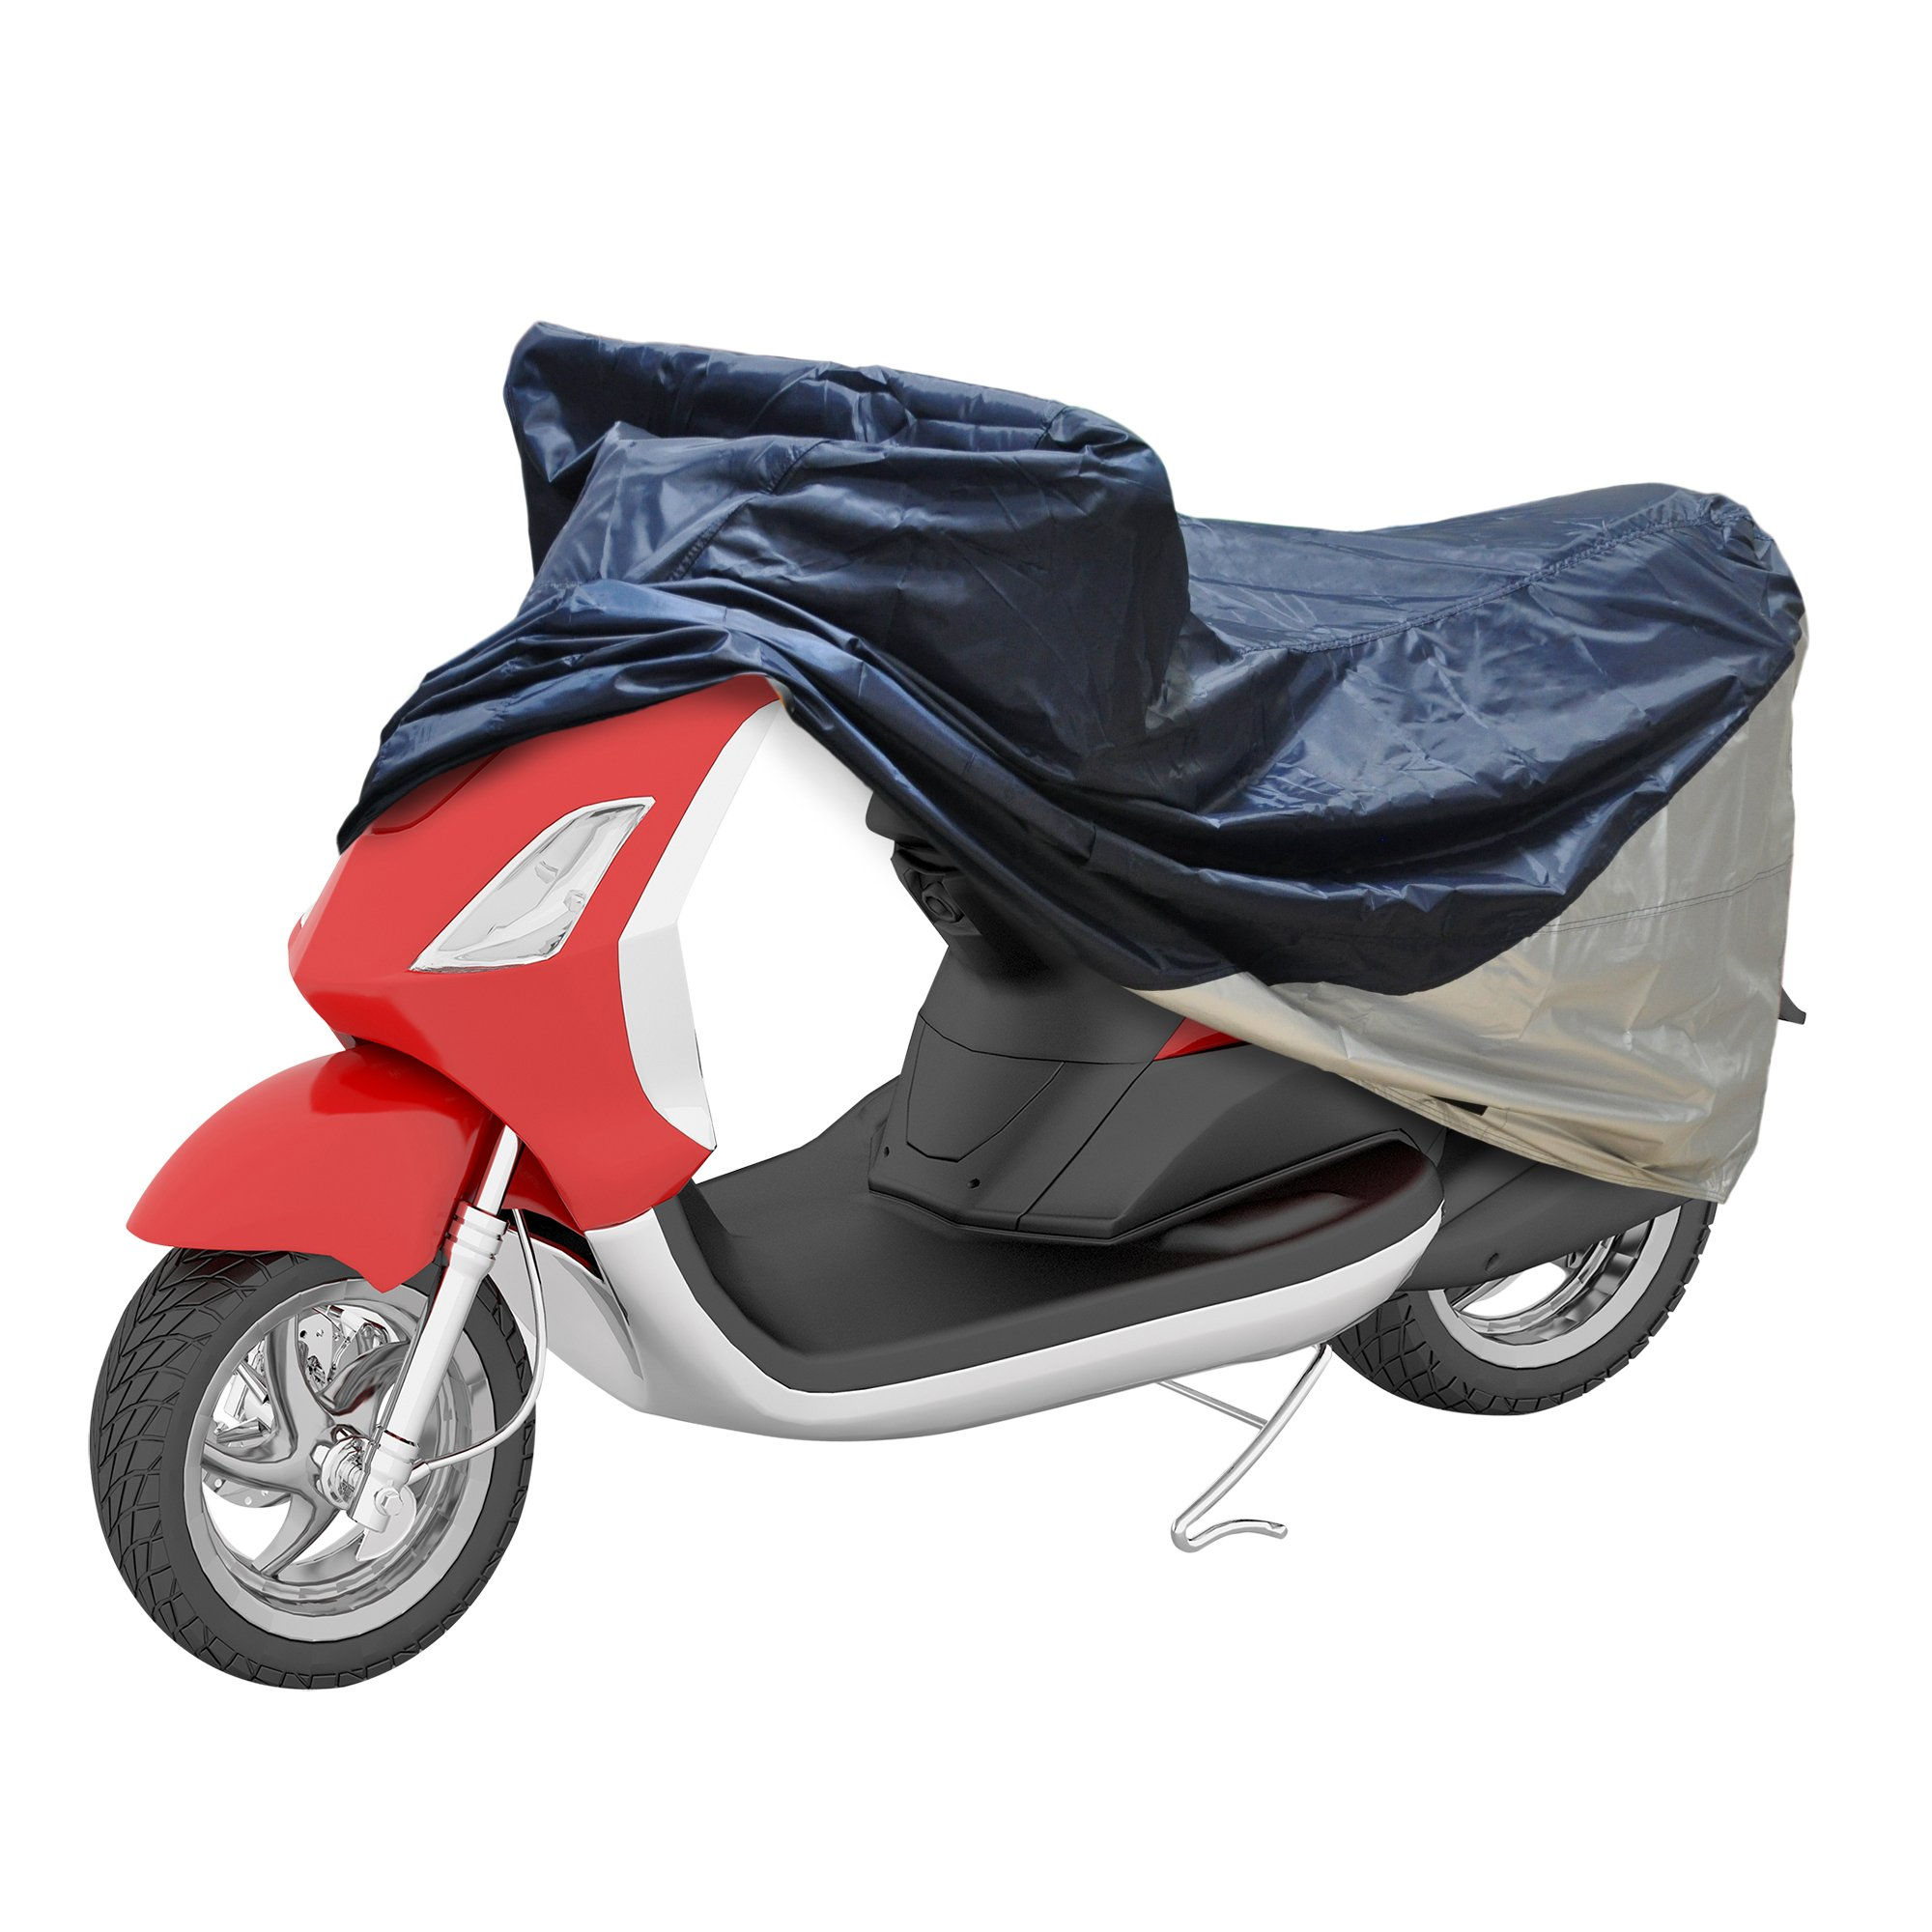 Detailer's Preference Polyester Scooter Cover Large